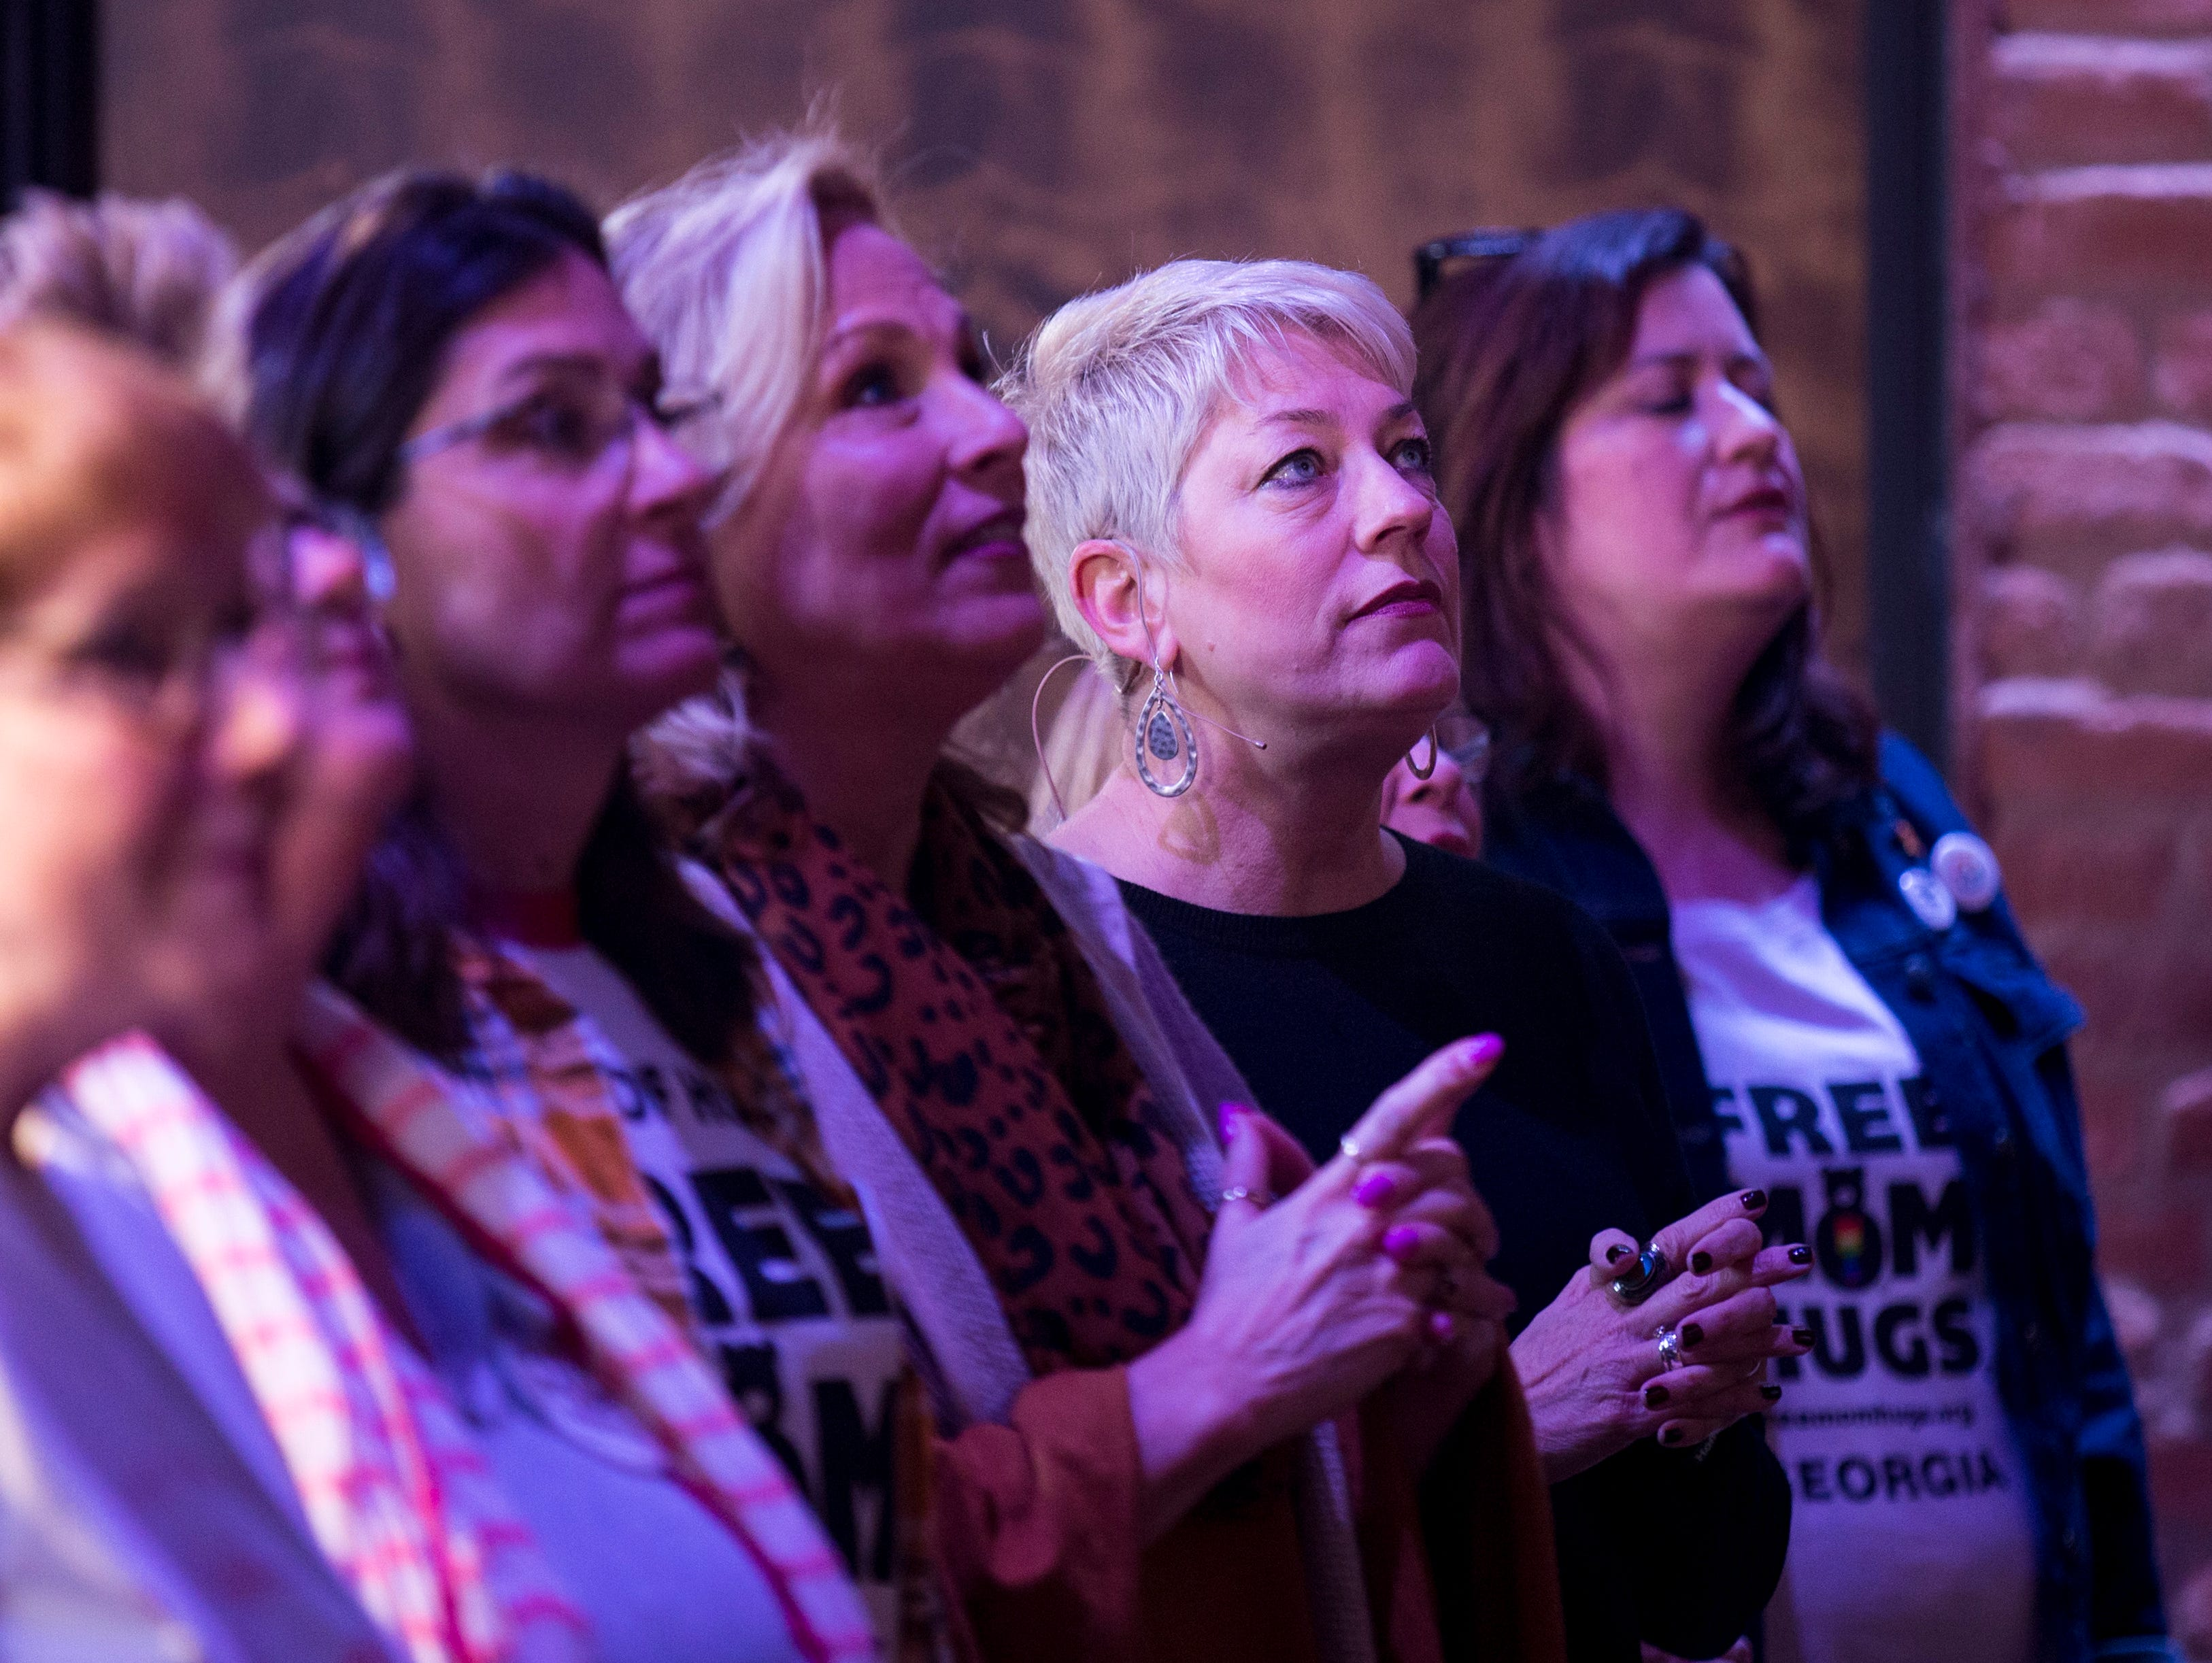 Sara Cunningham listens as the praise band performs, before speaking at GracePointe Church in Nashville on Sunday, March 31, 2019. Cunningham spoke about her journey to accepting her son as a gay man while keeping her faith.